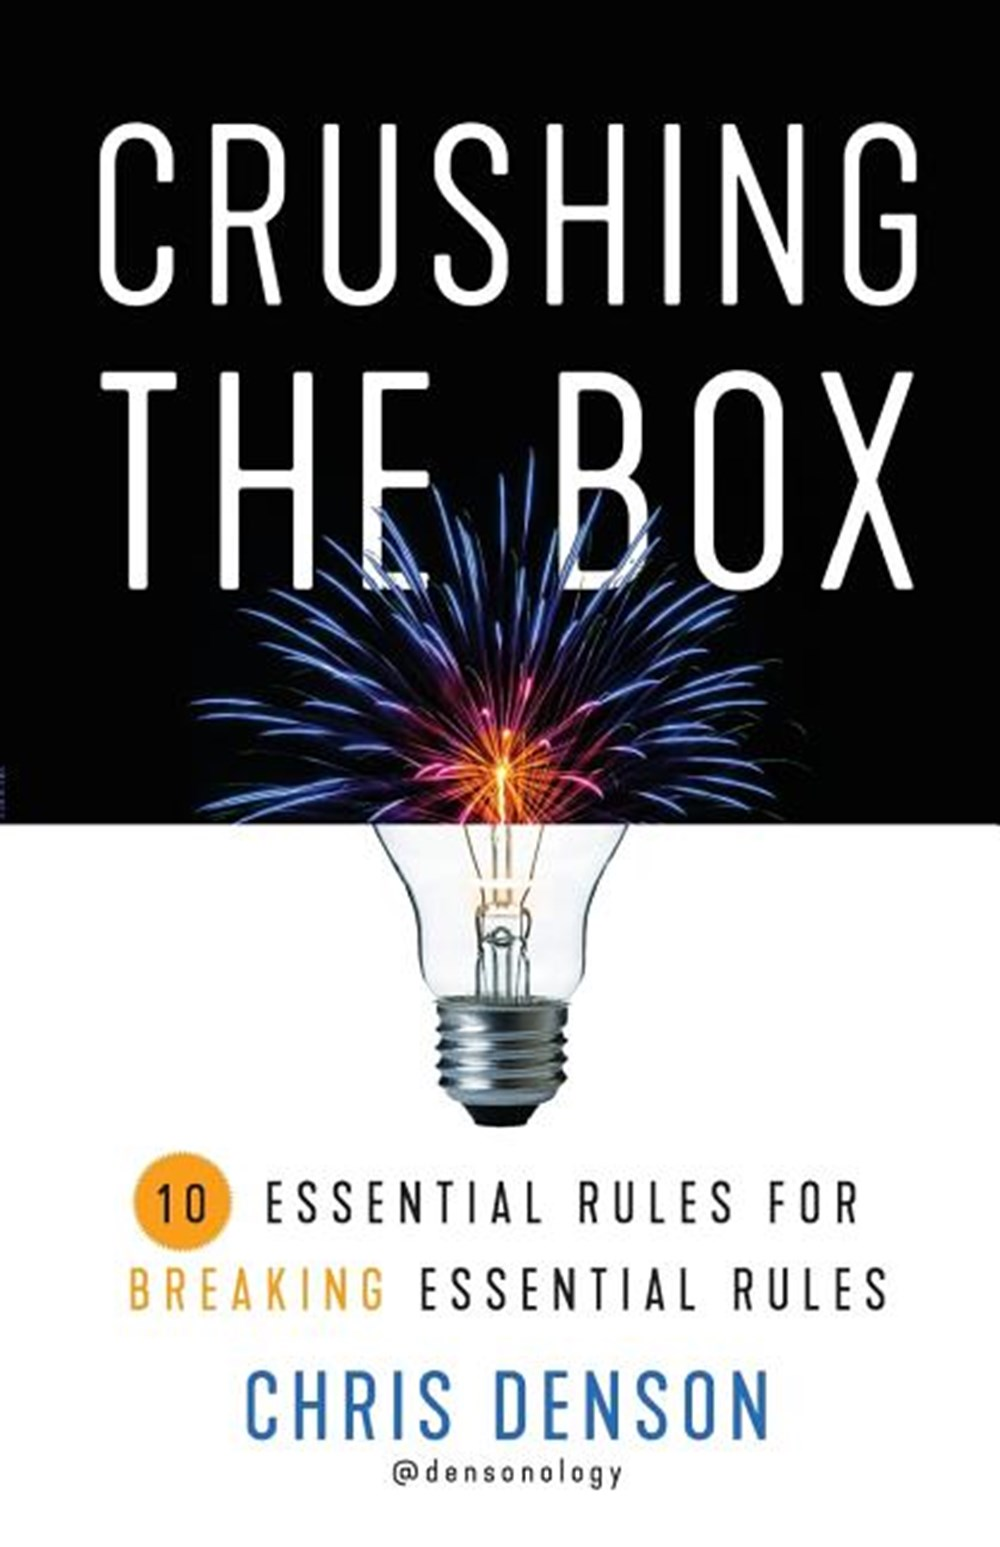 Crushing the Box 10 Essential Rules for Breaking Essential Rules